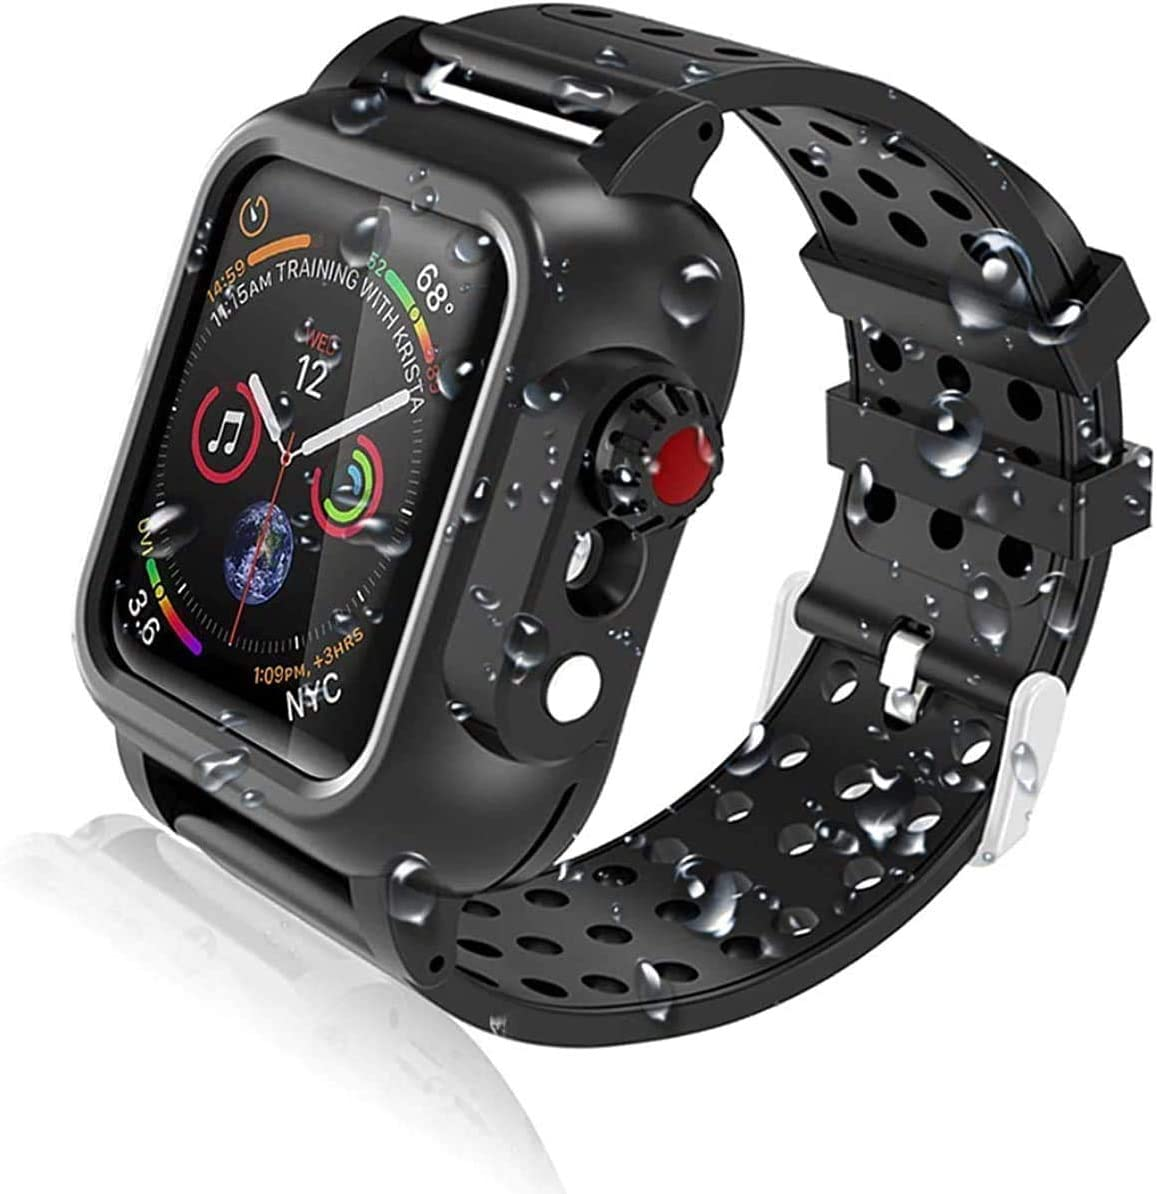 Waterproof Apple Watch Series SE/6//5/4 44mm Case with 2PCS Premium Soft Bands,Shockproof Impact Resistant Rugged Protective Case Bulit-in Screen Protector for Apple Watch Series 4/5/6/SE 44mm (44mm)